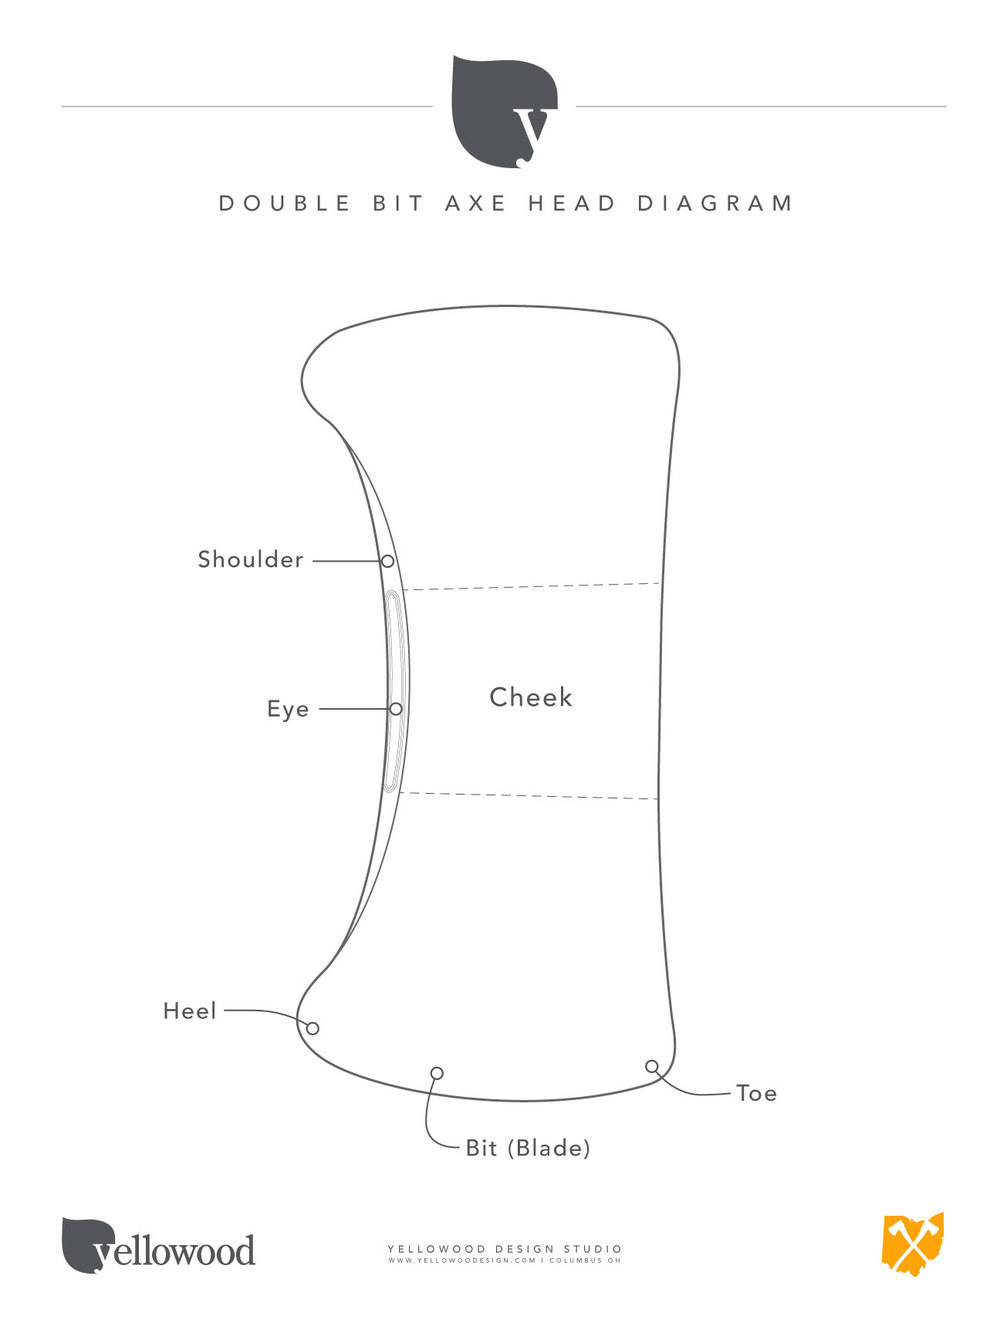 Double bit axe head diagram.